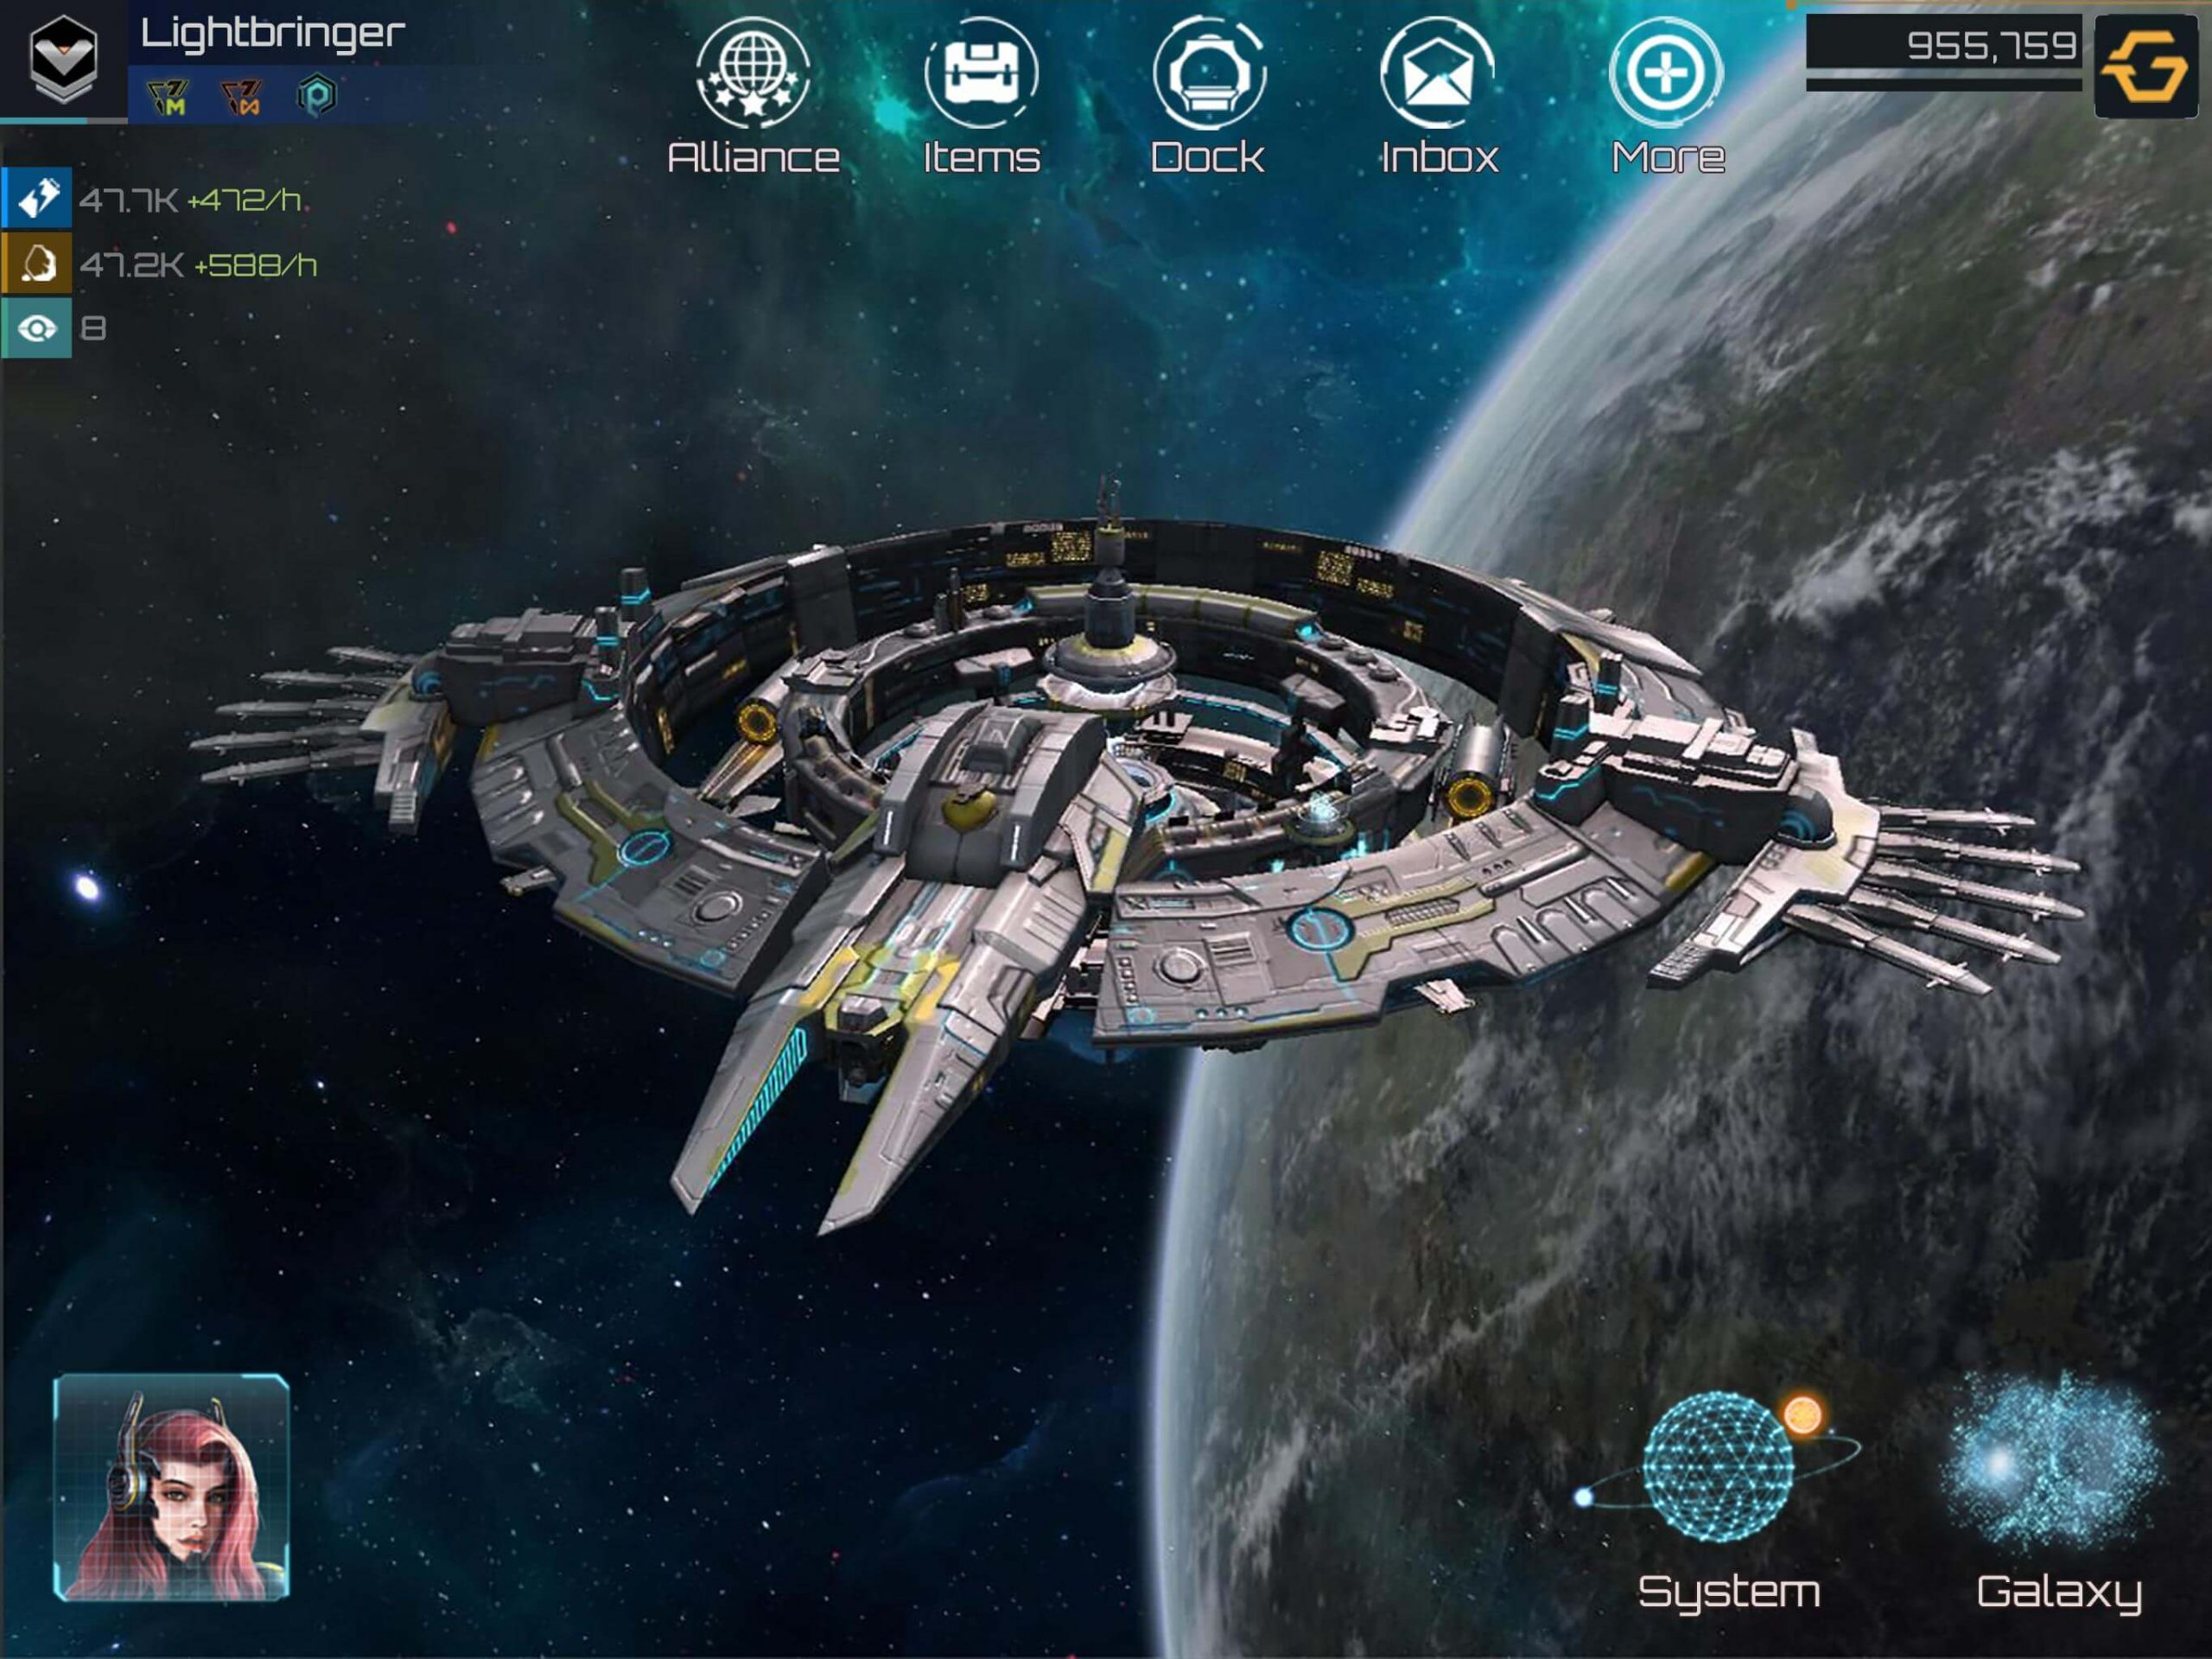 Nova empire is one of the best strategic game with good graphics.